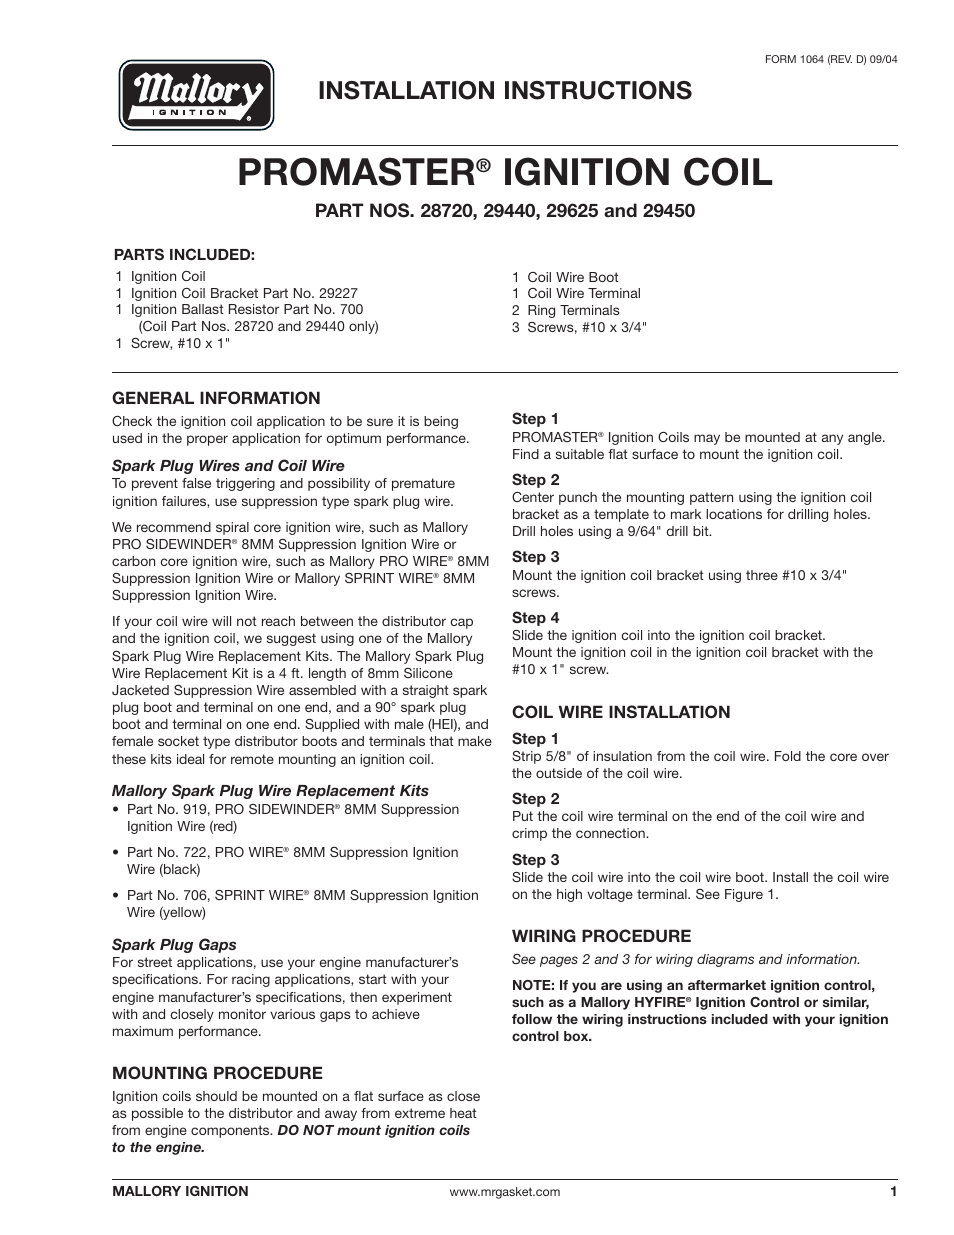 Accel Points Eliminator Wiring Diagram 38 Images Mallory Ignition Promaster Coil 29440 29450 29625 Page1resize